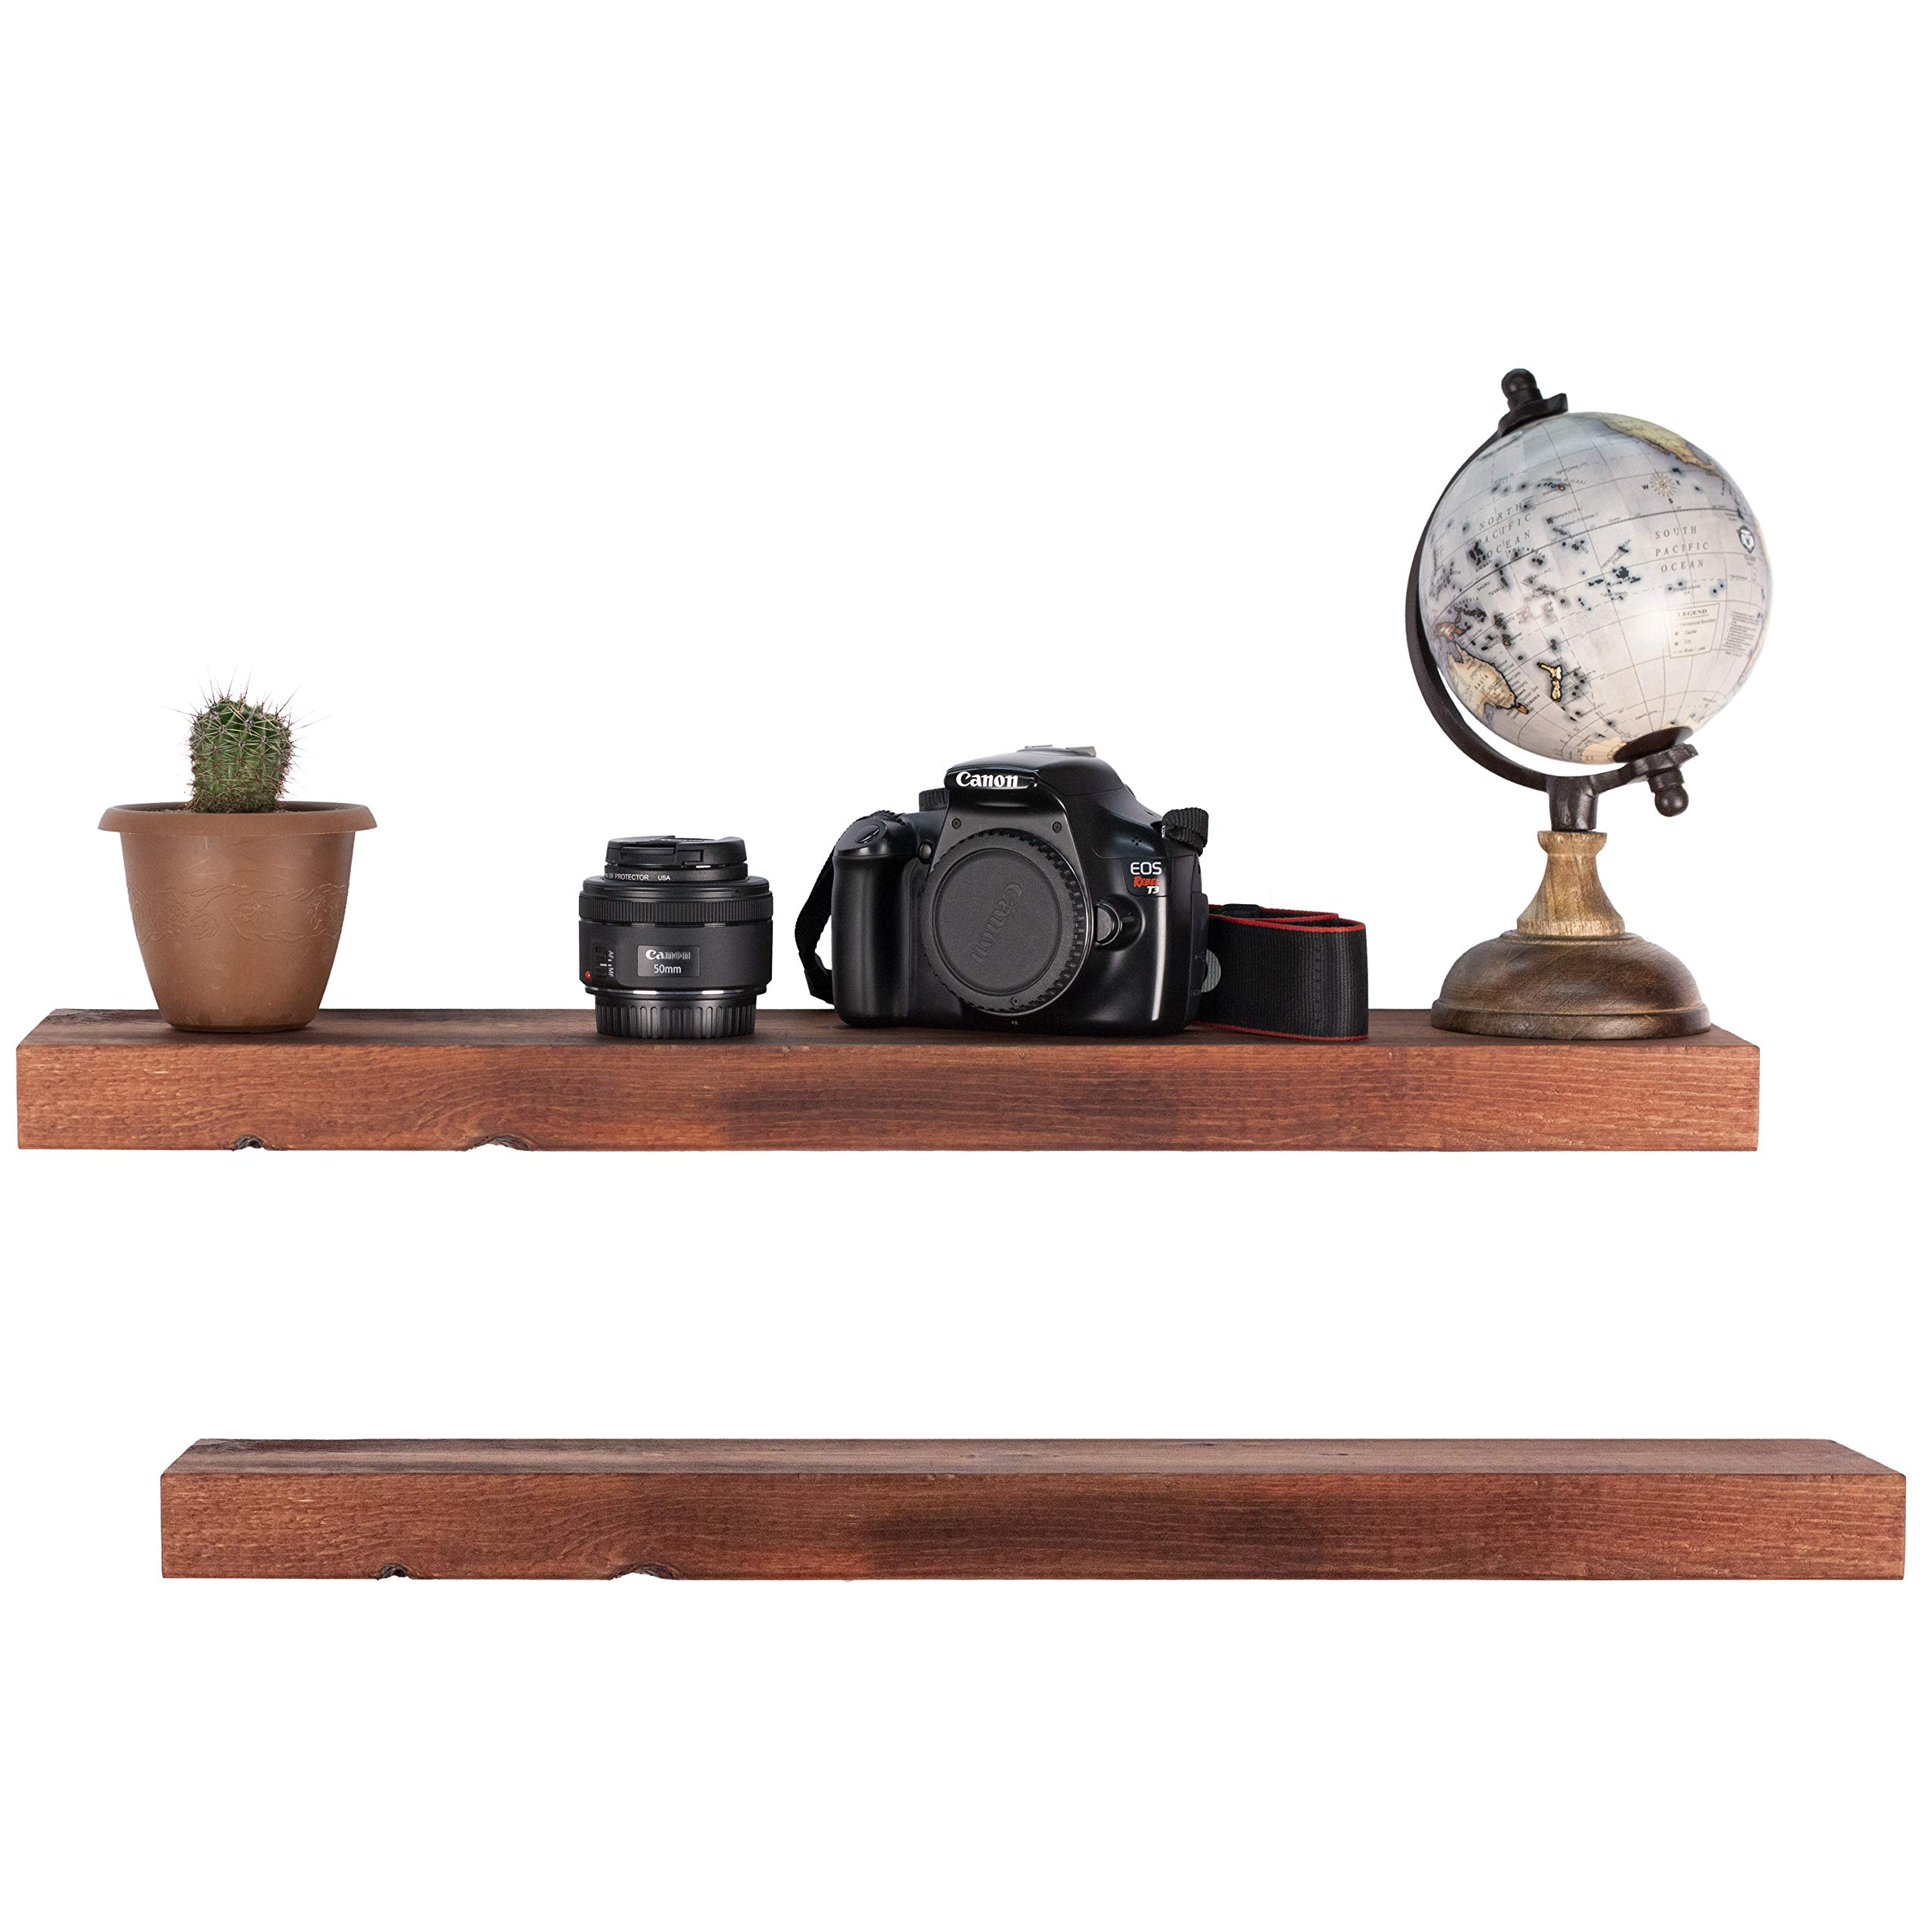 Floating Shelves Wall Mounted Shelf - Rustic Wood Decor Hanging for Bathroom Kitchen Bedrooms Living Room or Office Walls - Sturdy & Decorative Shelving Storage Rack - USA Made - 2 FT. Mahogany 2-Pack by US2U Displays (Image #5)